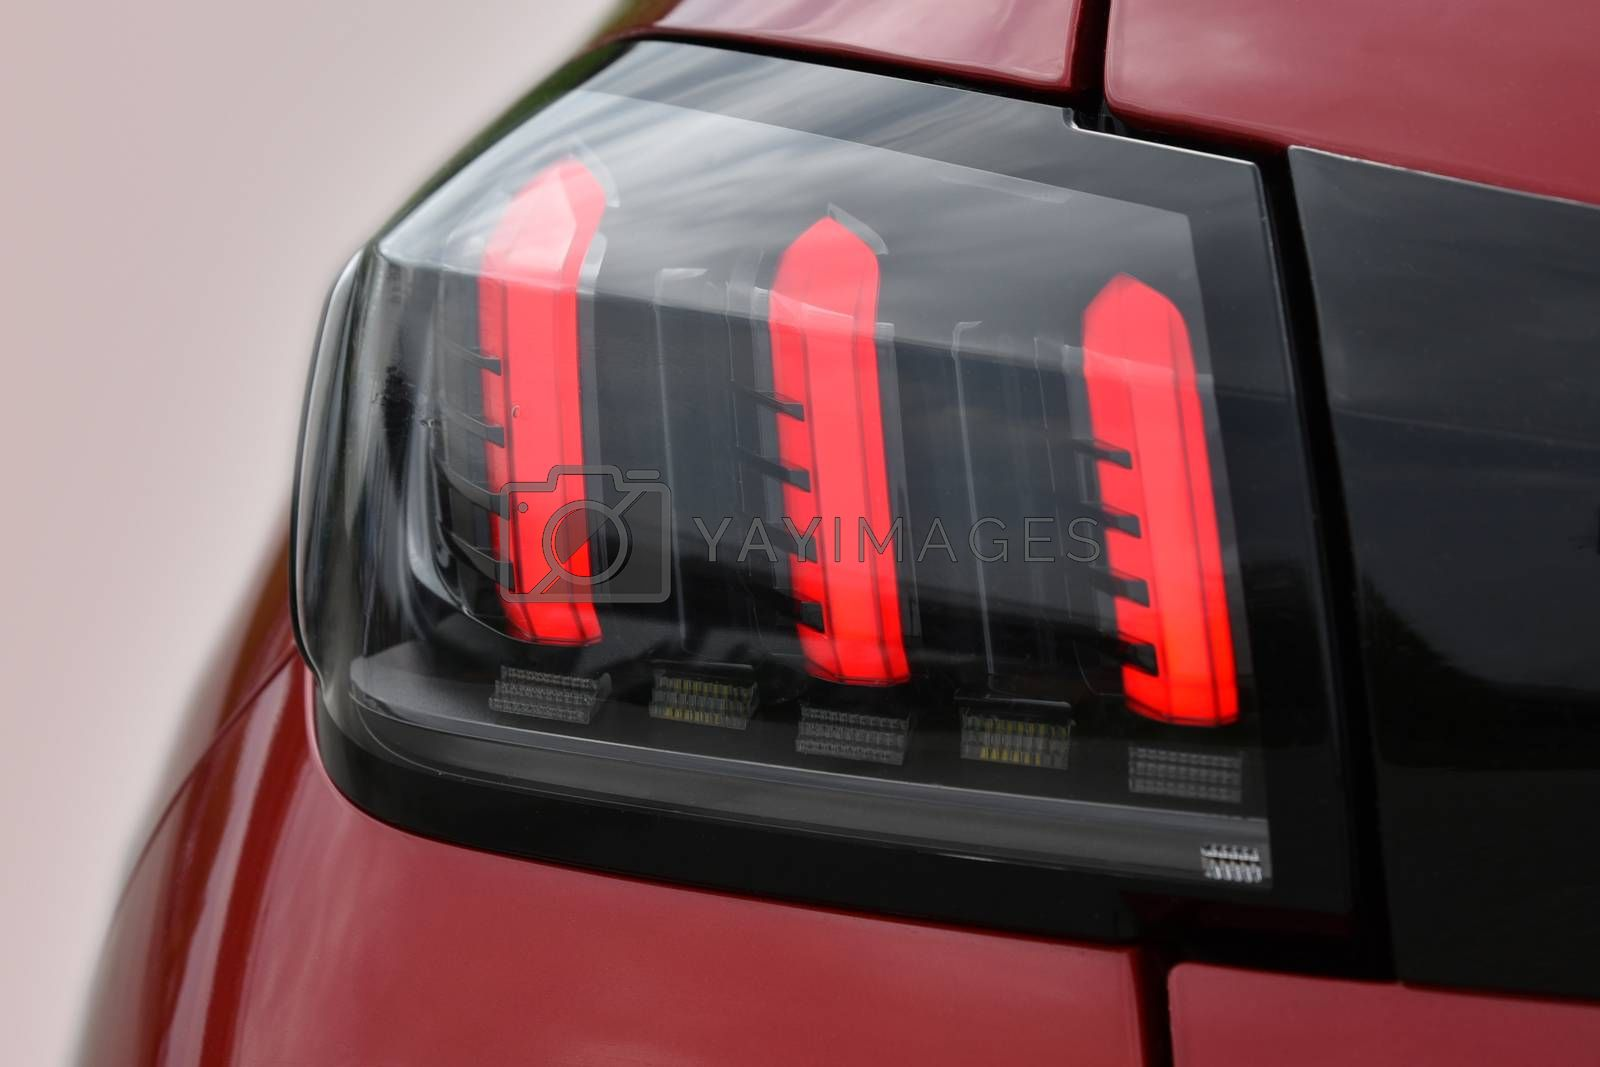 Royalty free image of The tail lights on a luxury passenger car by aselsa